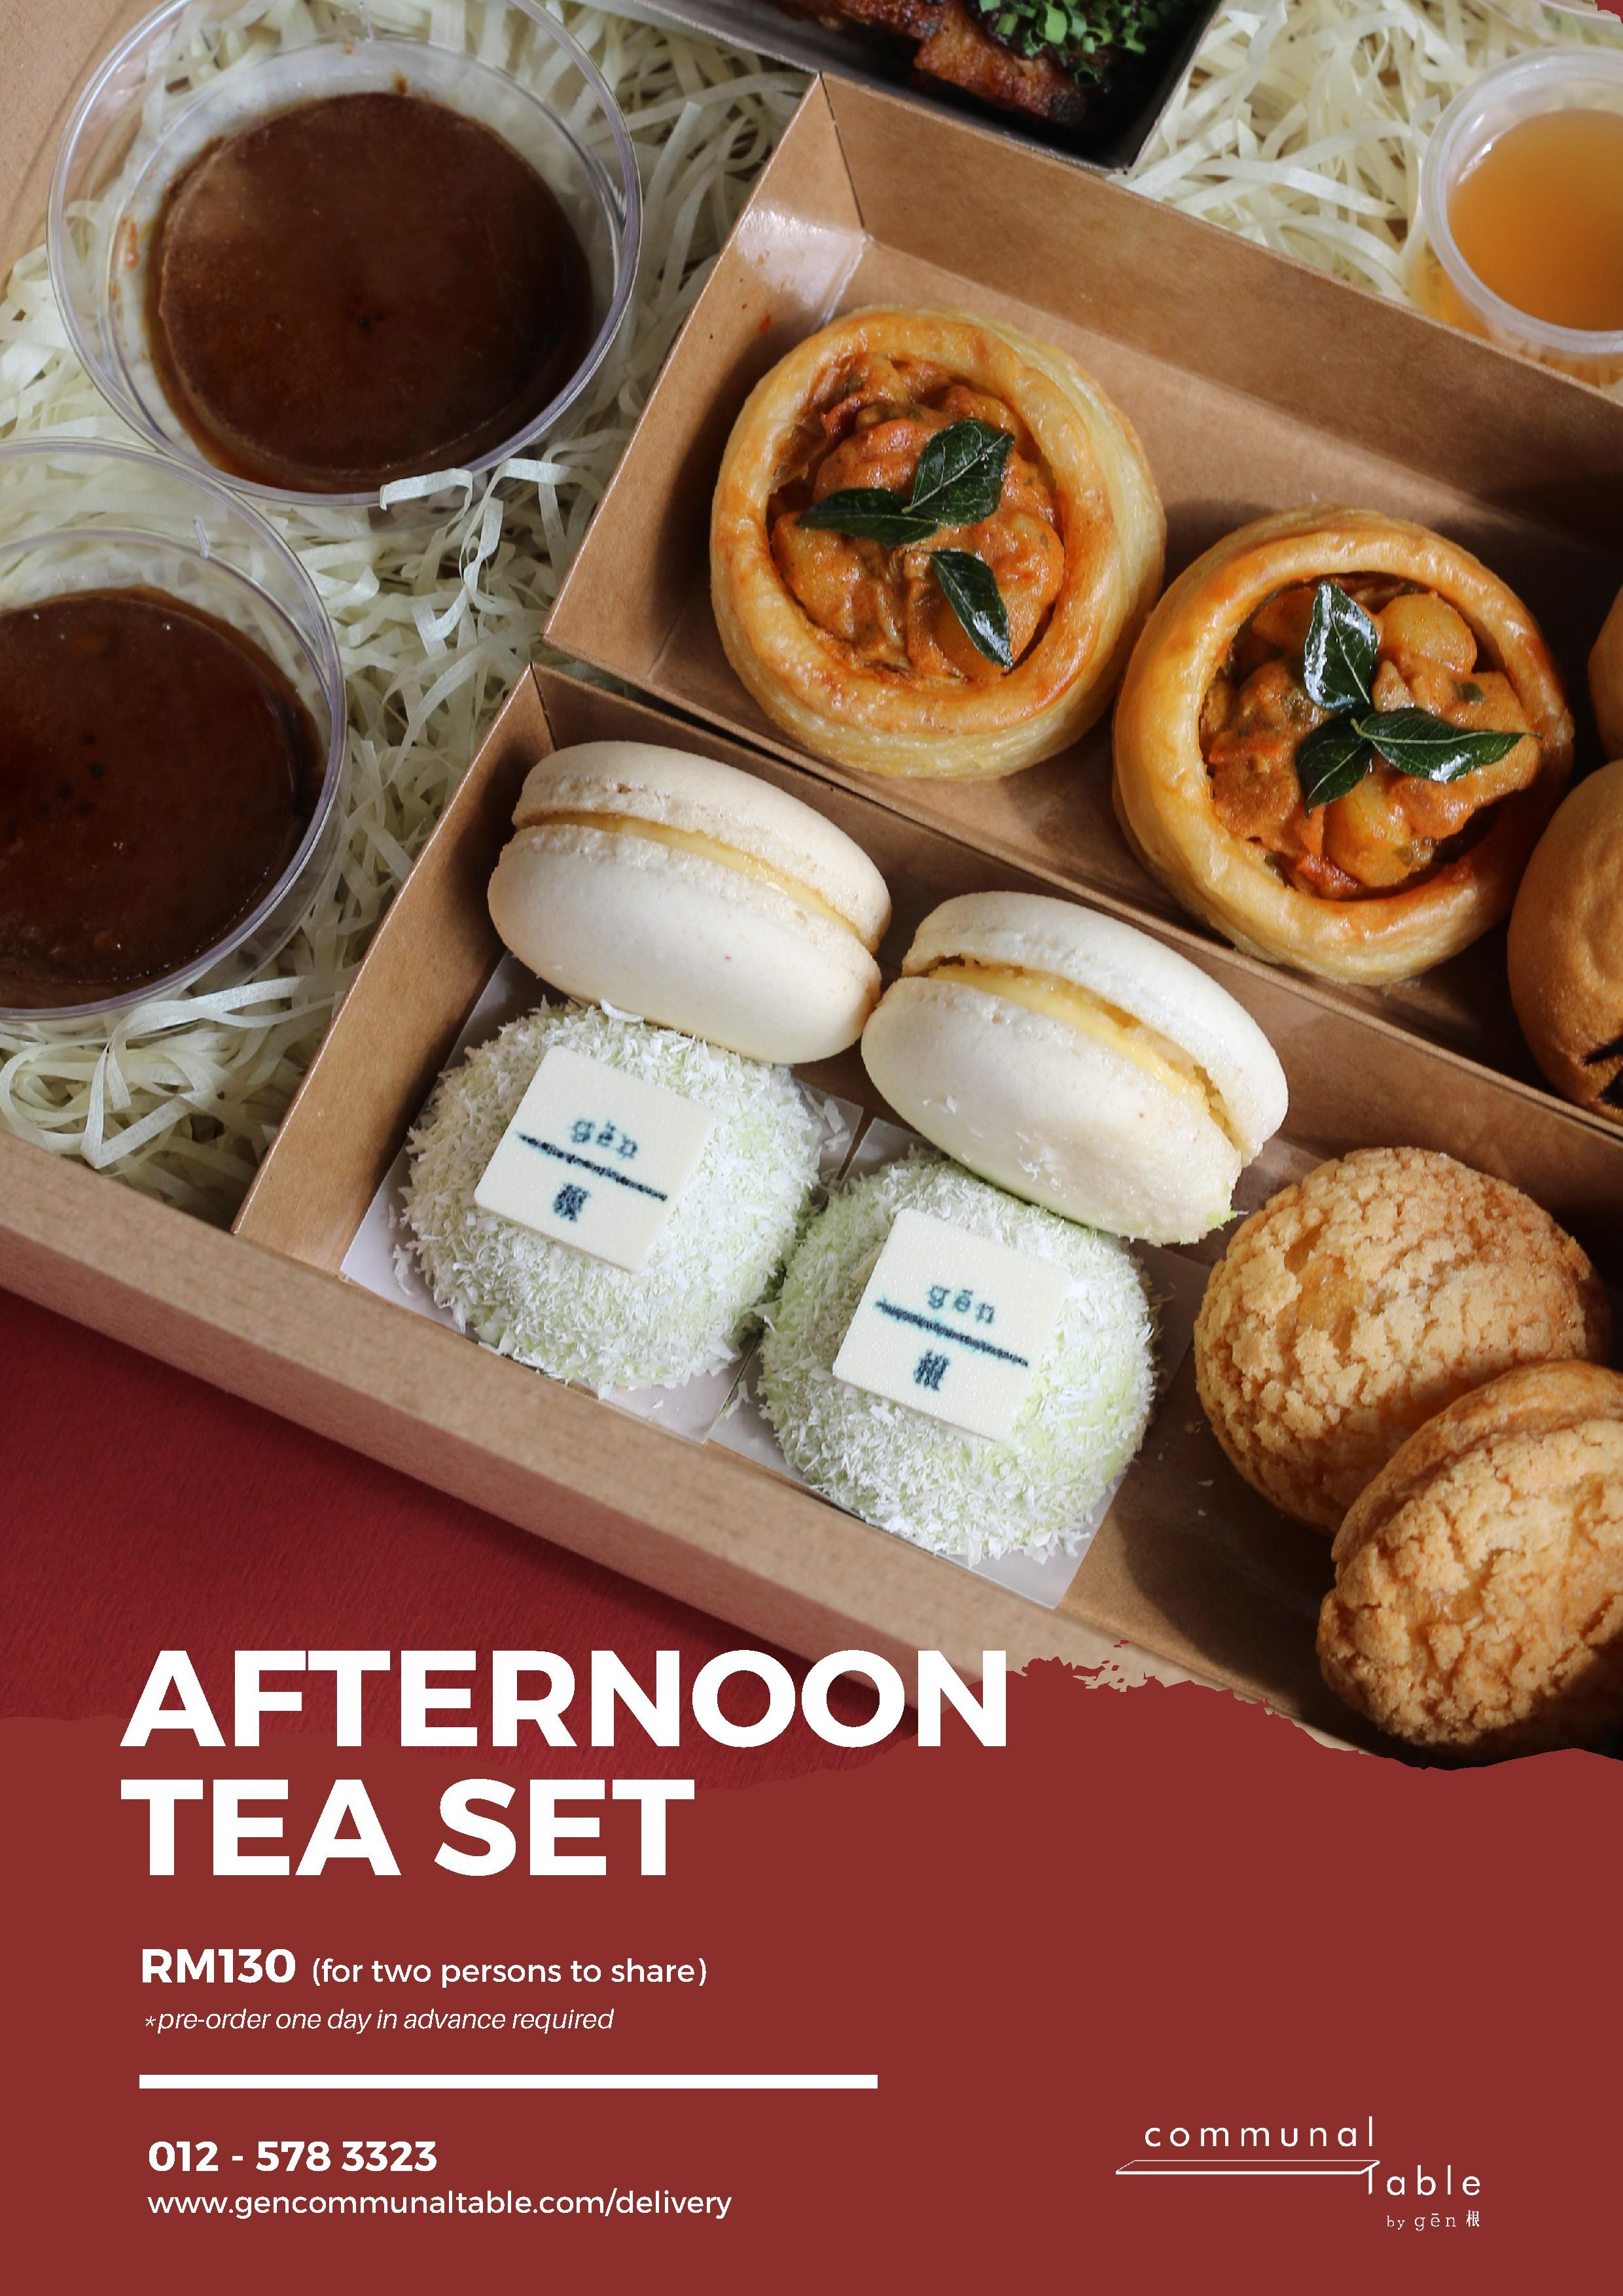 Afternoon Tea Set Communal Table by Gēn 根